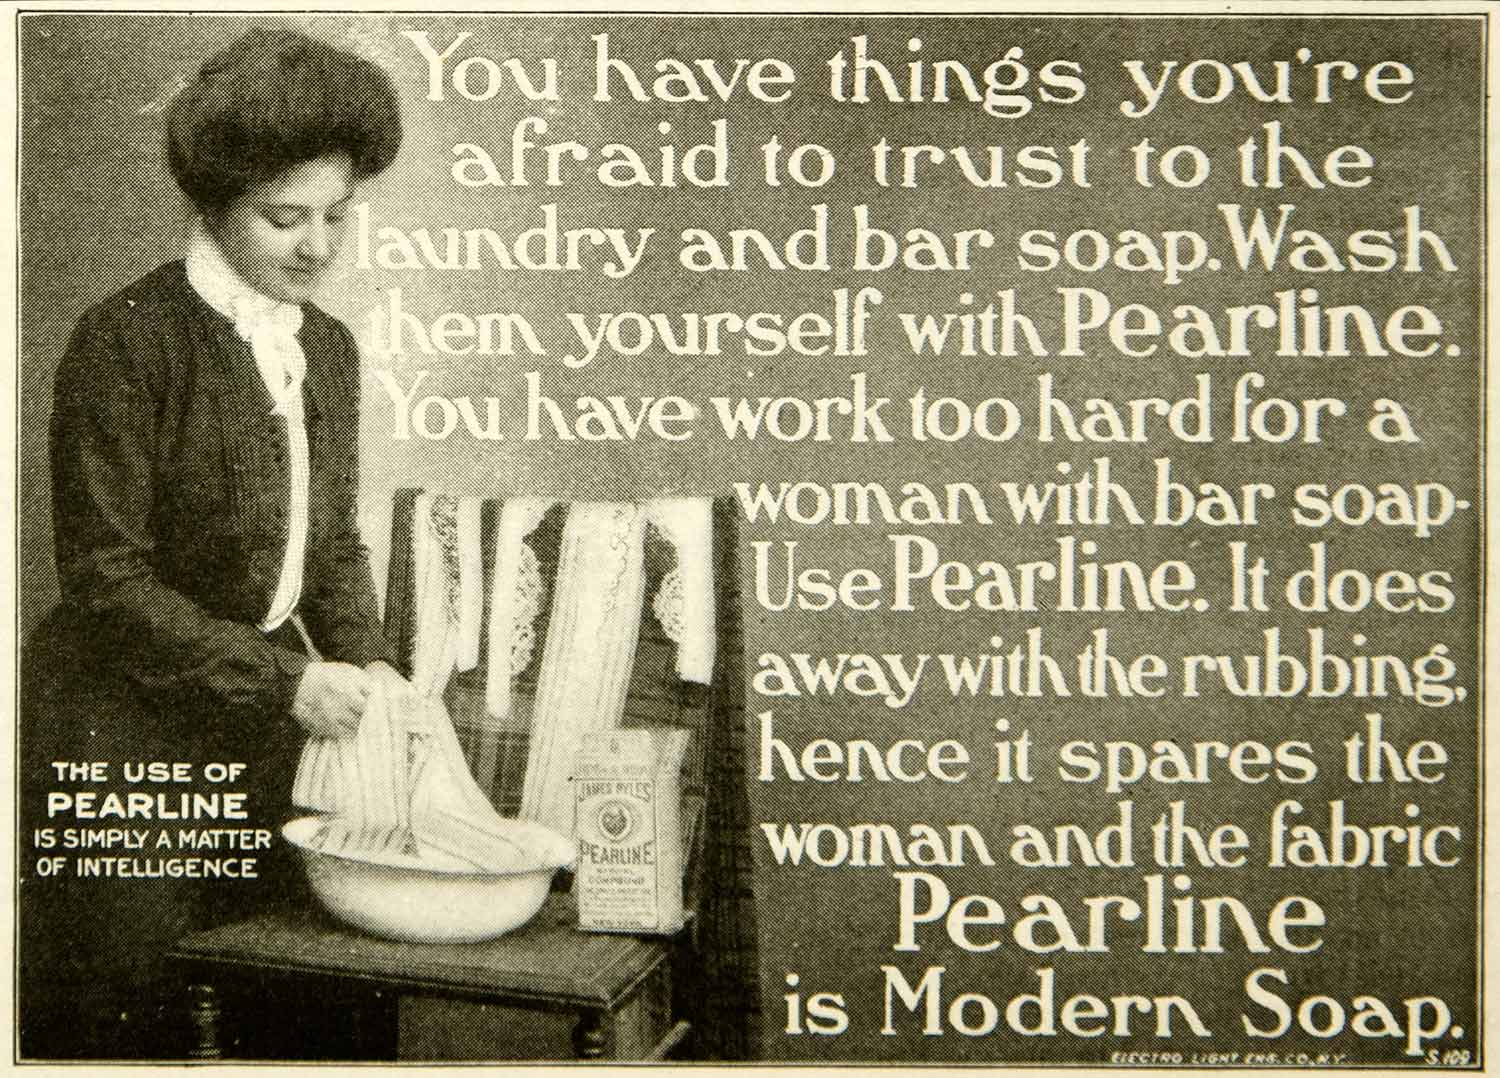 1902 Ad Pearline Soap Wash Laundry Victorian Woman Clean Modern Bar Fabric YYC2